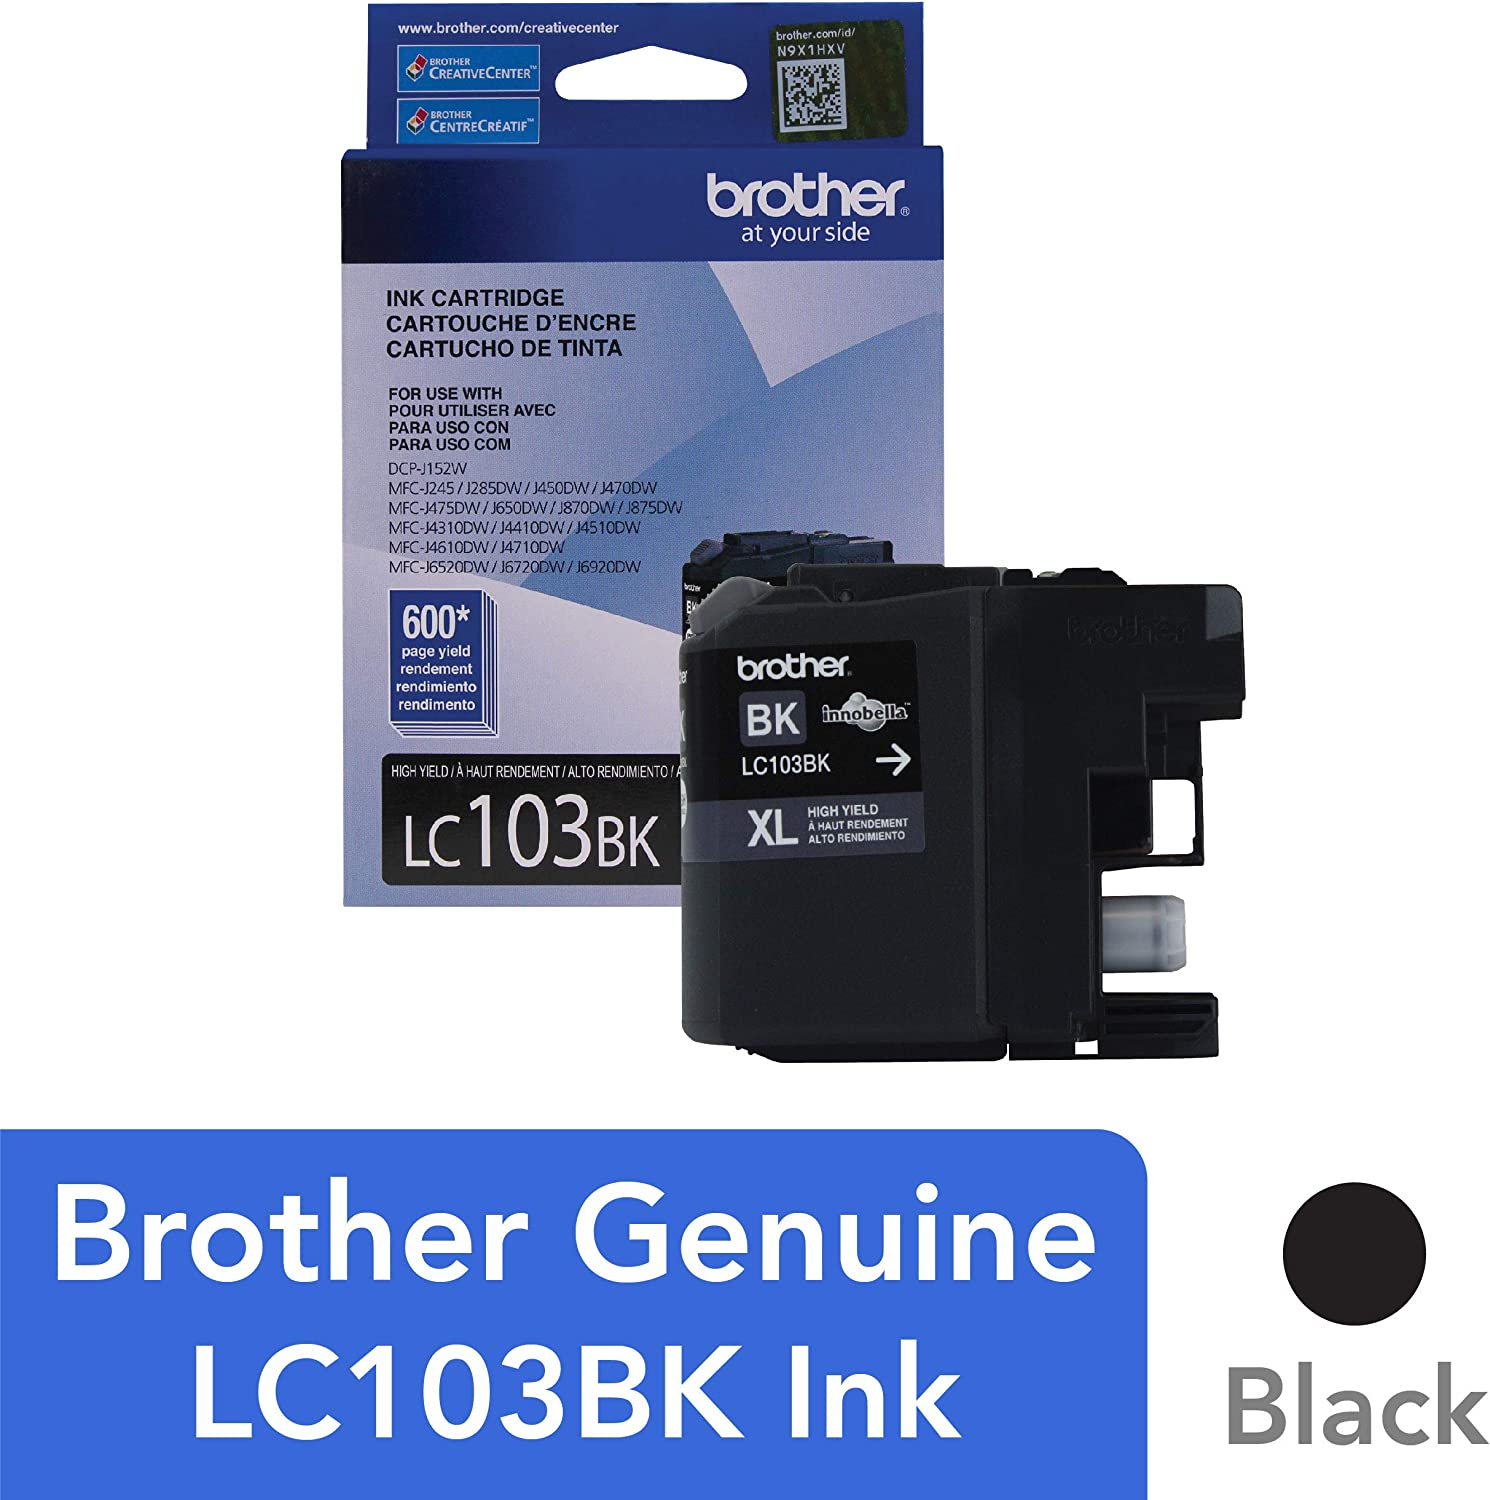 Brother Genuine High Yield Black Ink Cartridge, LC103BK, Replacement Black Ink, Page Yield Up To 600 Pages, Amazon Dash Replenishment Cartridge, LC103, 1 OEM Cartridge